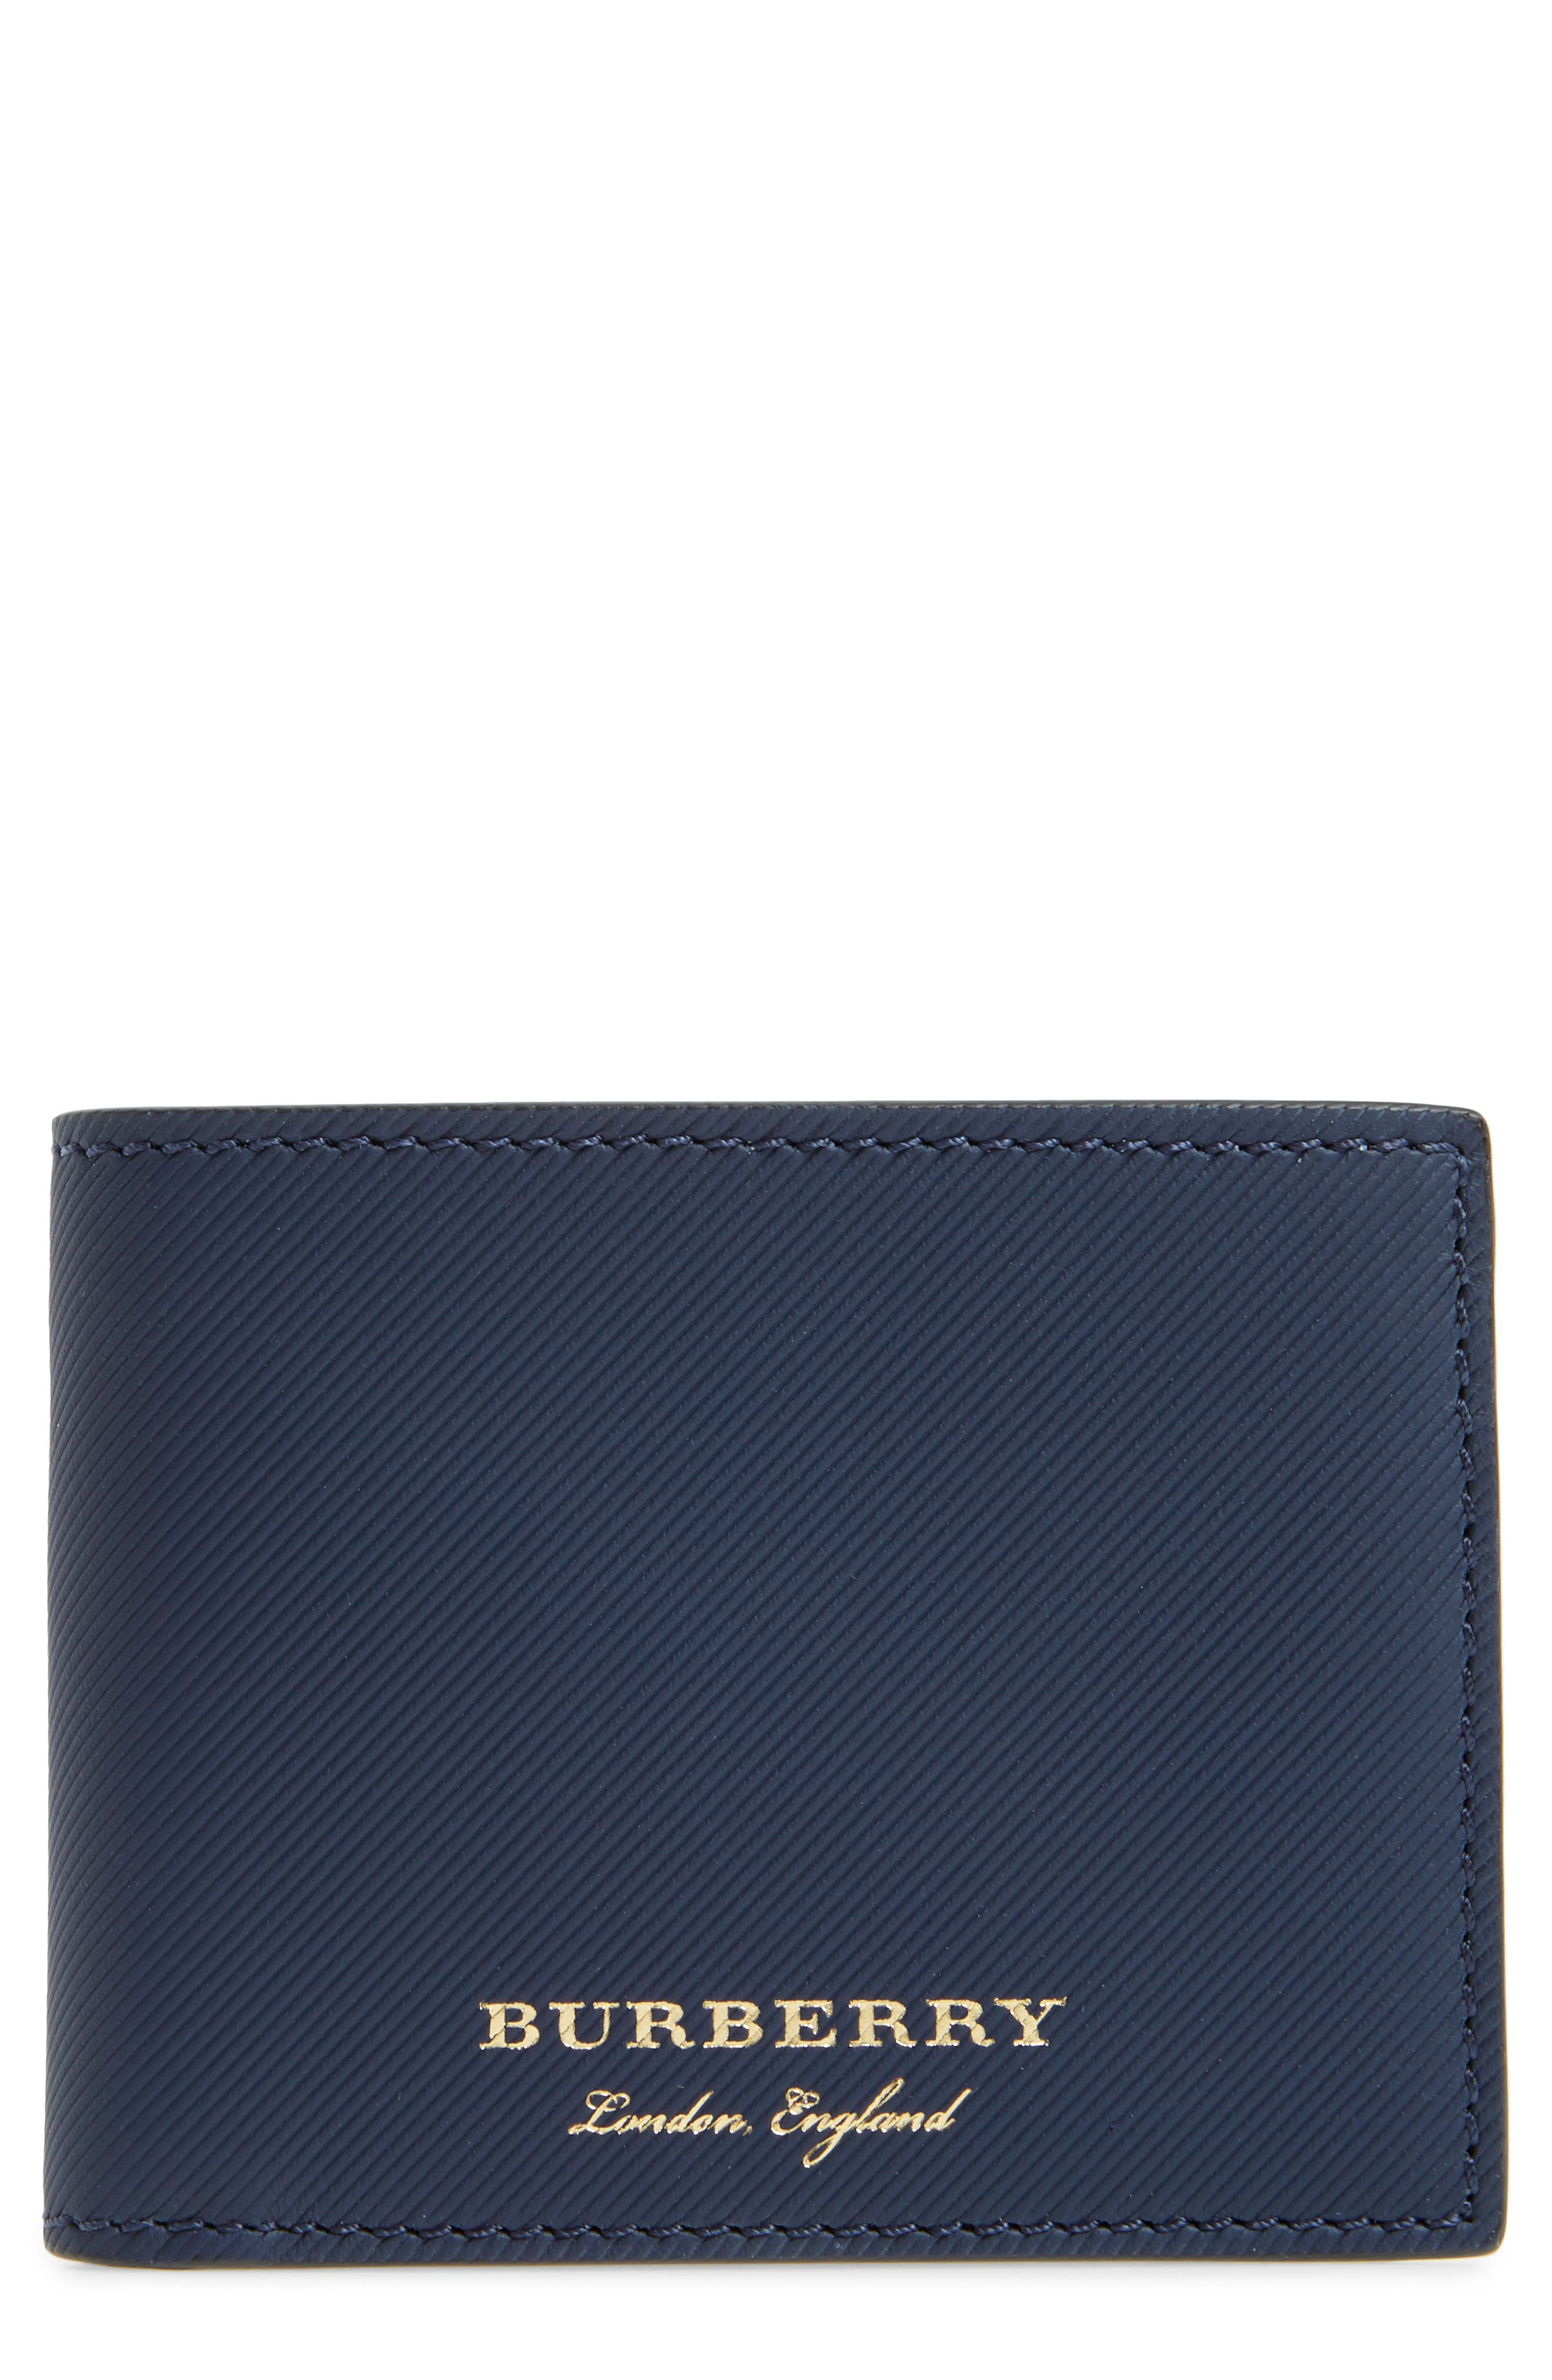 Trench Leather Wallet,                             Main thumbnail 1, color,